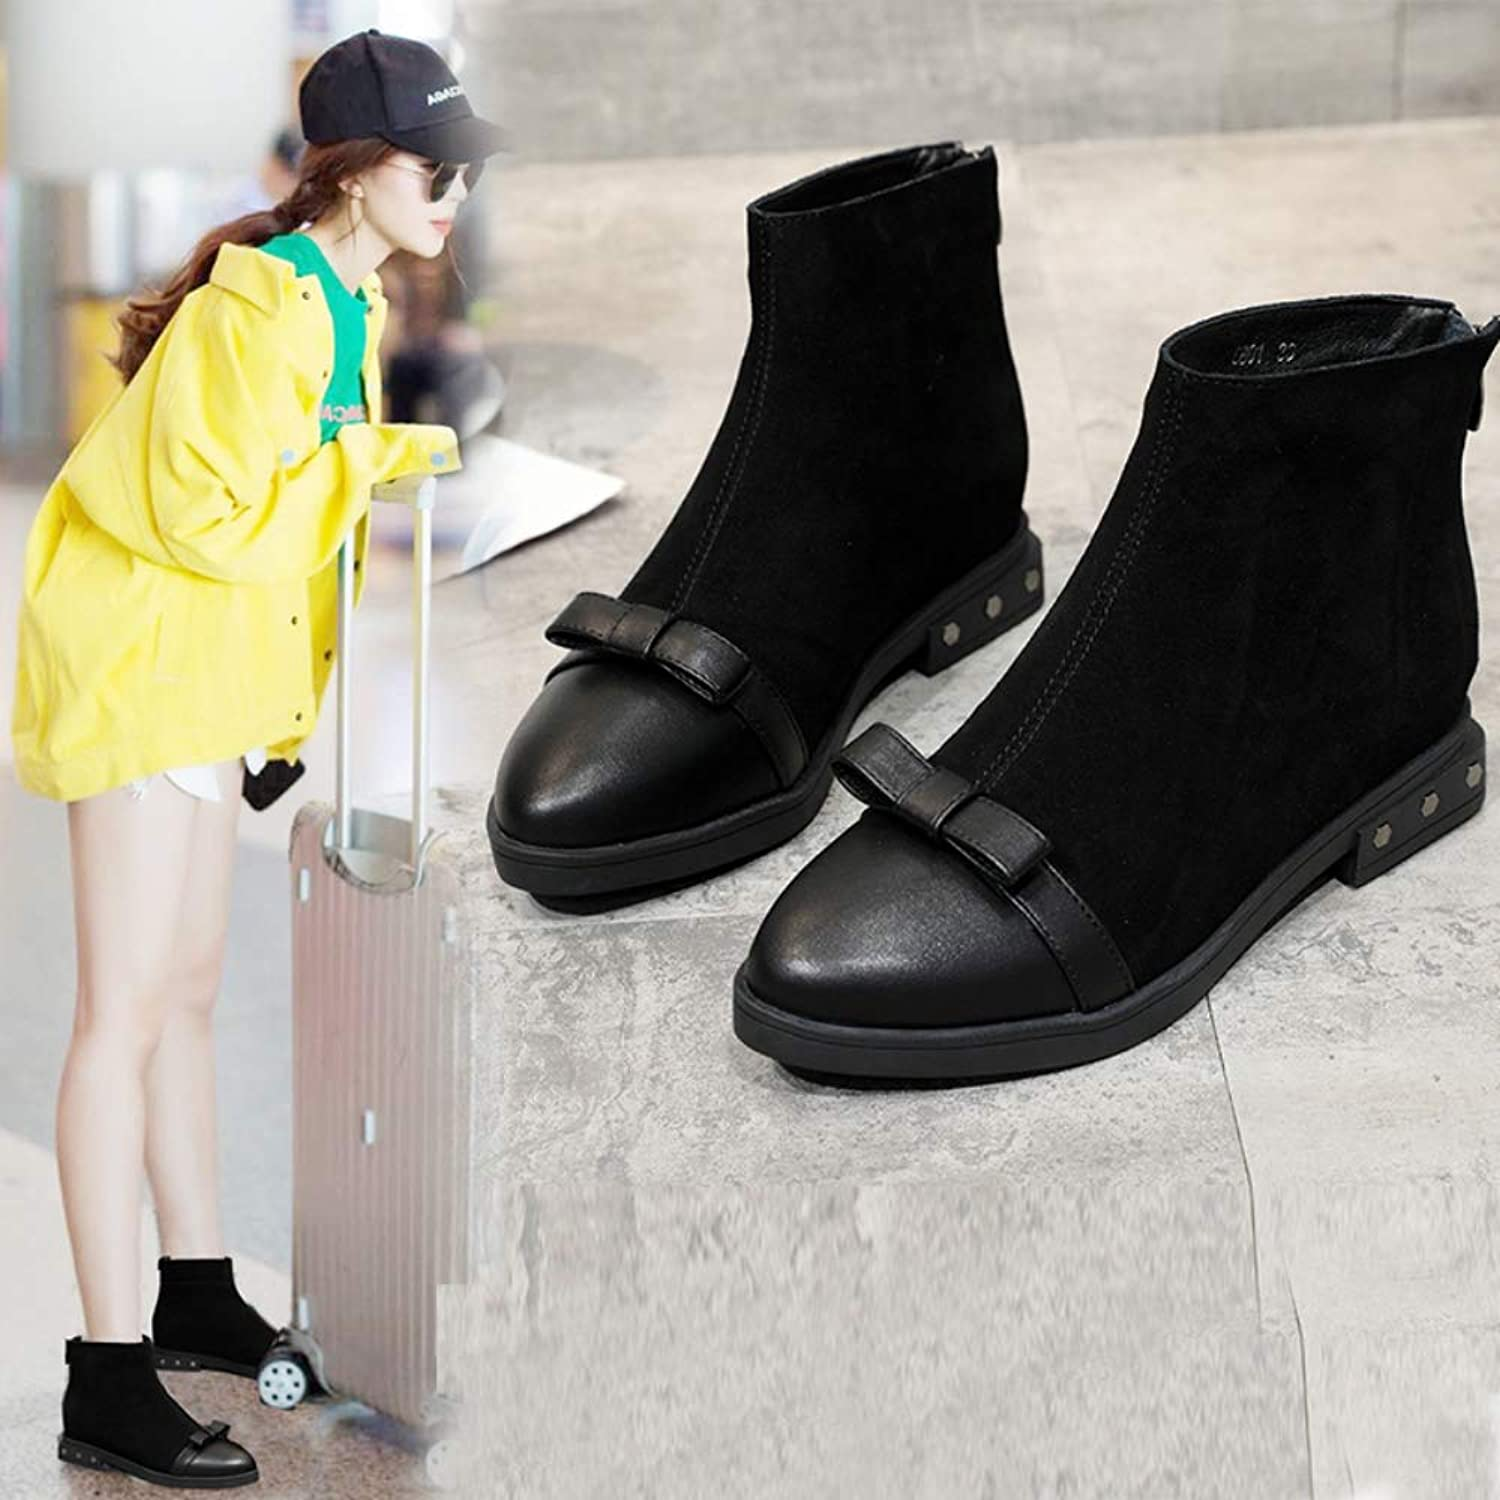 Women's shoes with Martin Boots Warm shoes Zipper Ankle Boots Black Leather Boots 3-6.5